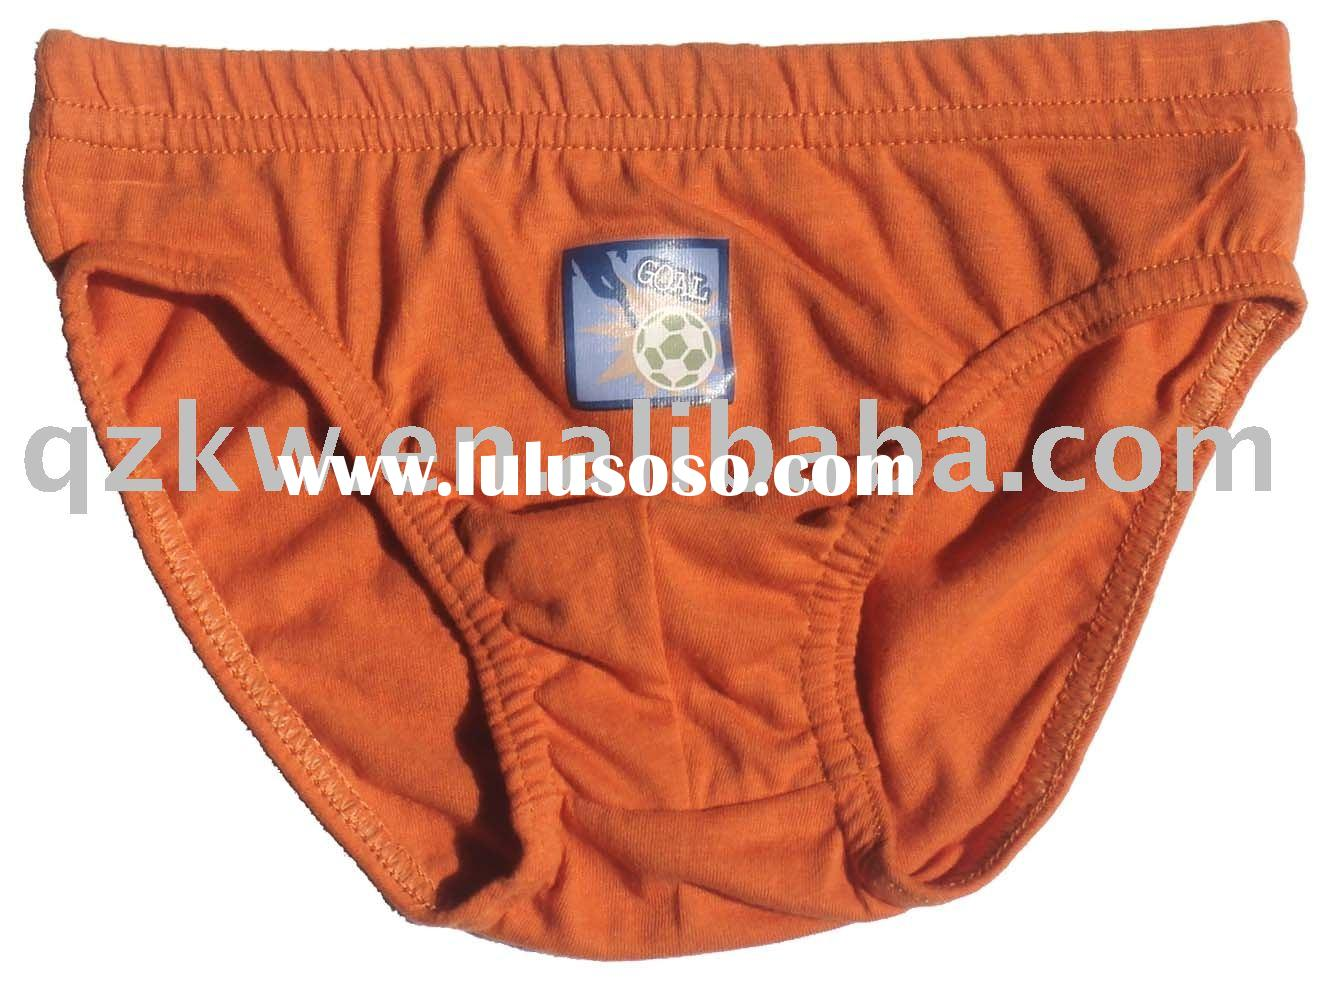 Boy's underwear (boy's boxers, children's underwear, boy's briefs)